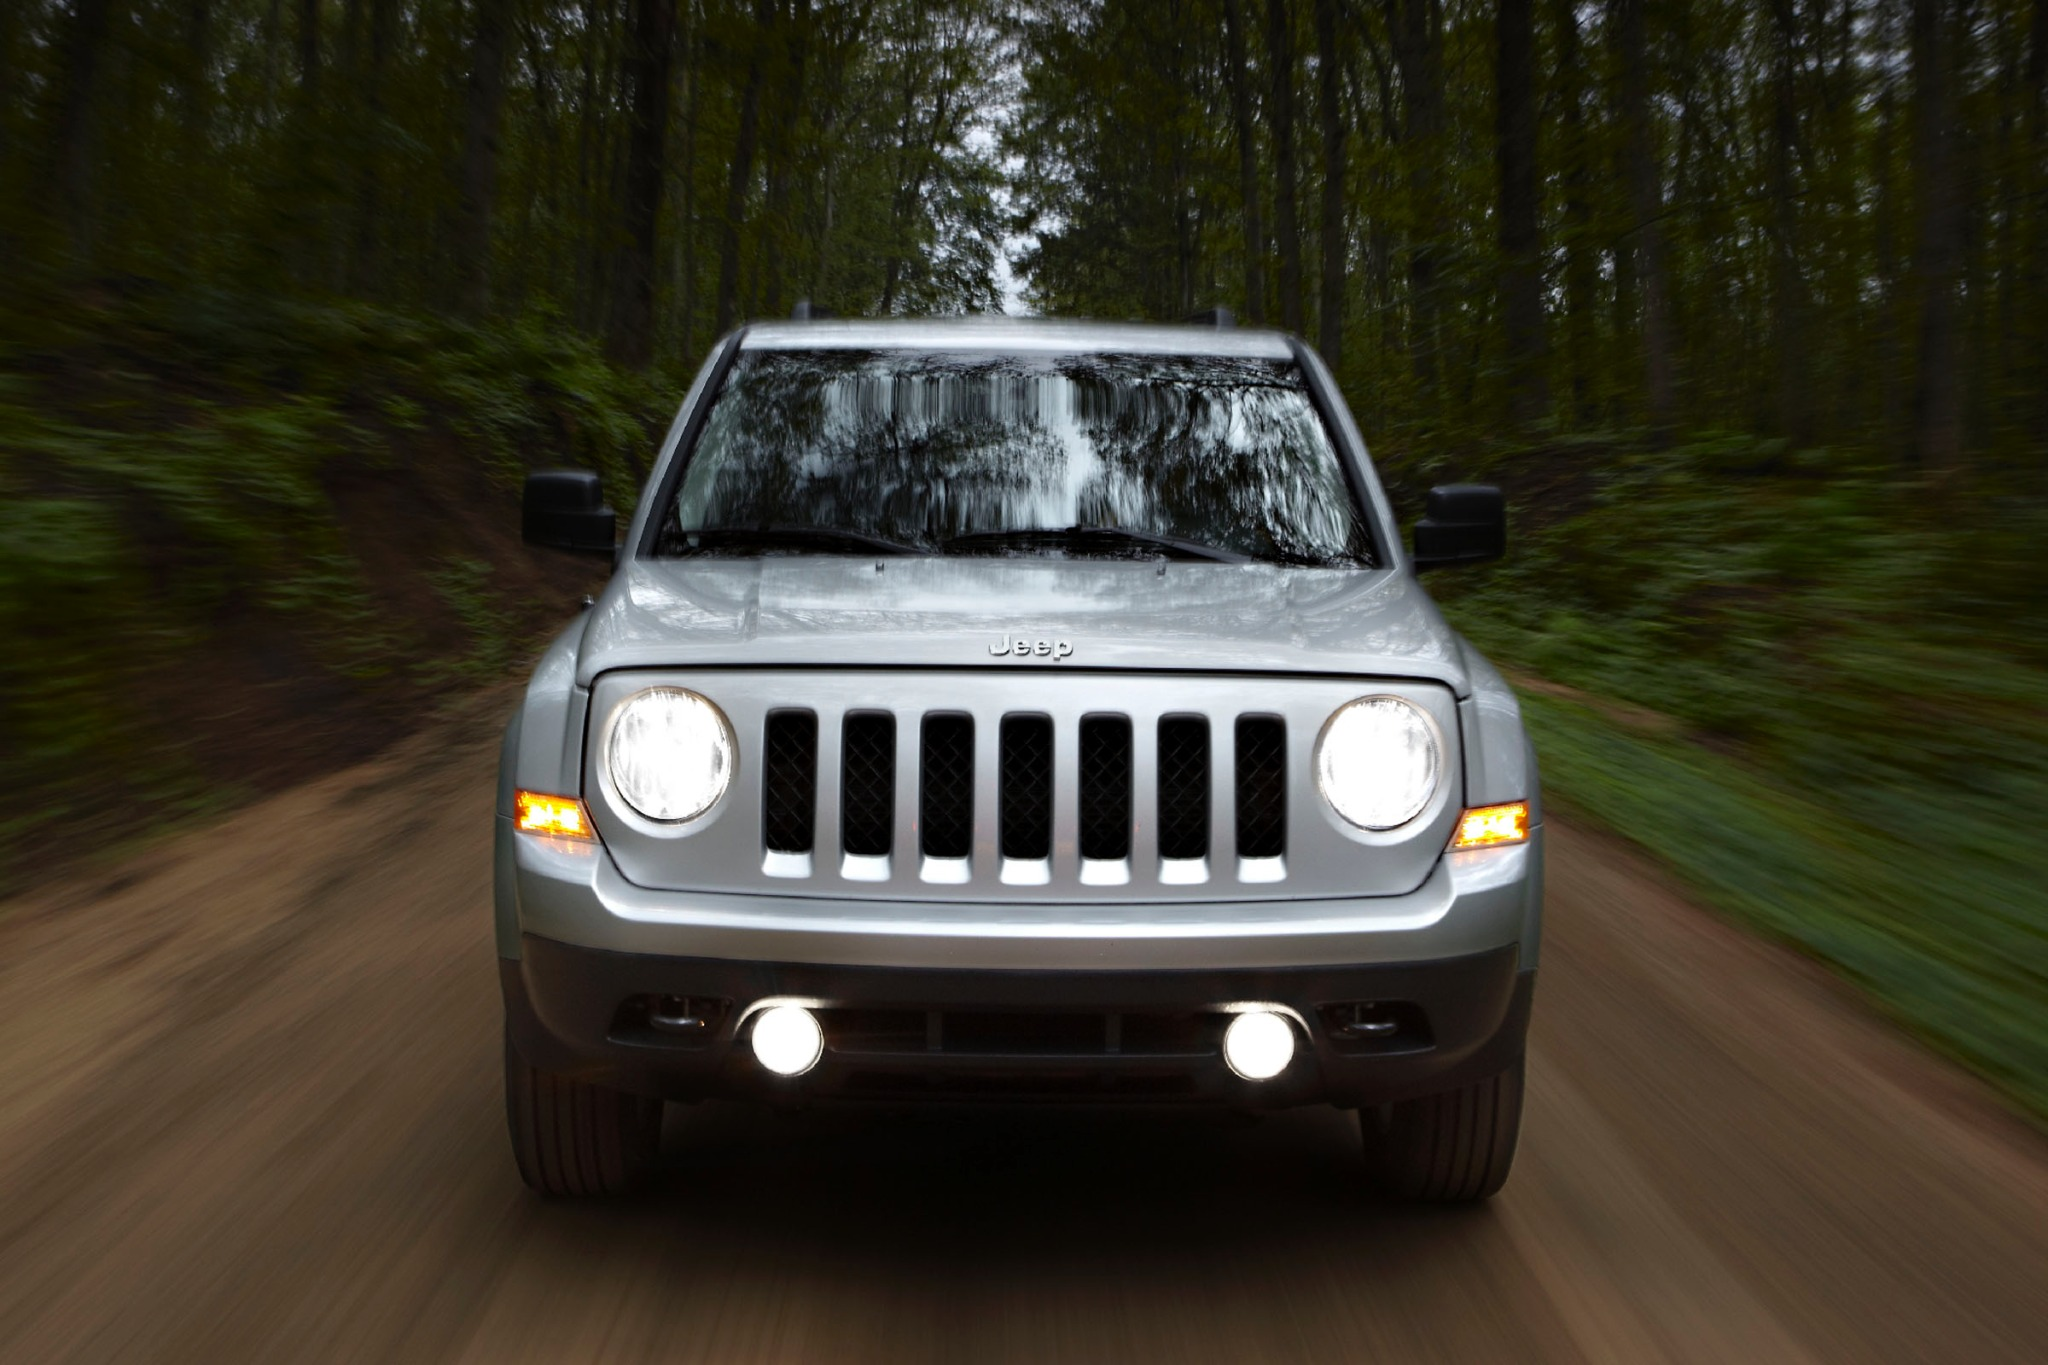 2012 Jeep Patriot Latitud interior #6